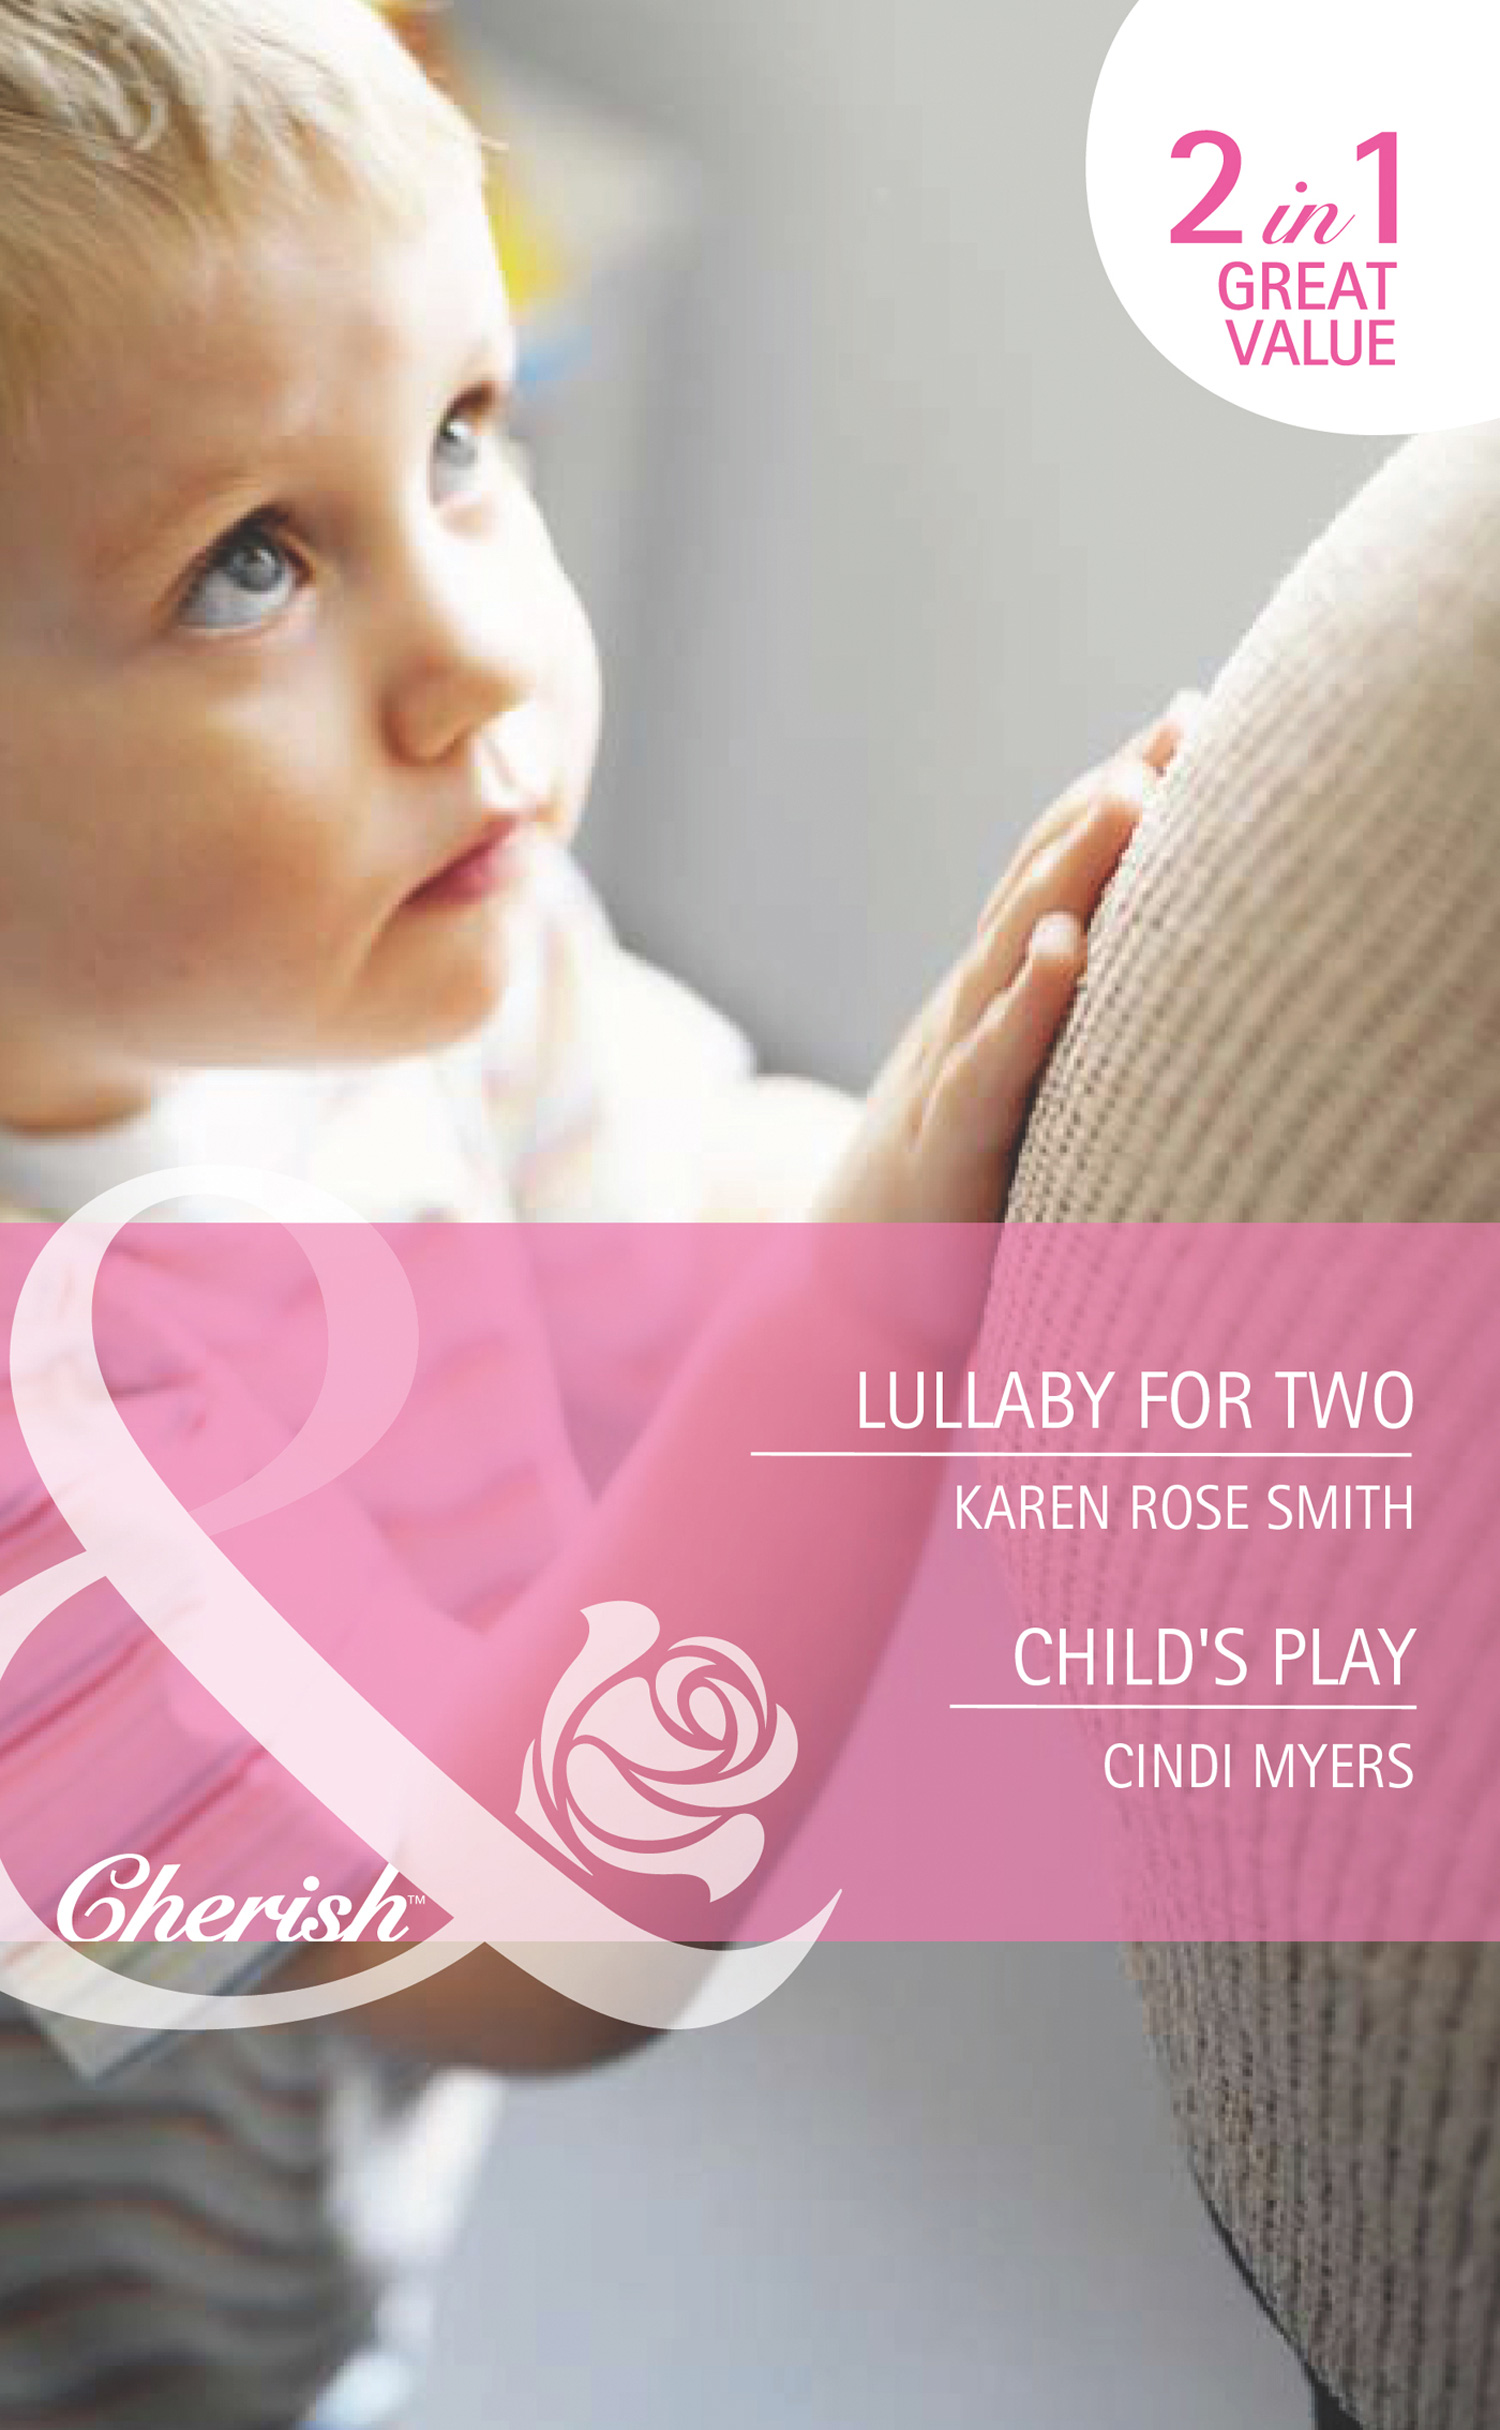 Lullaby for Two / Child's Play